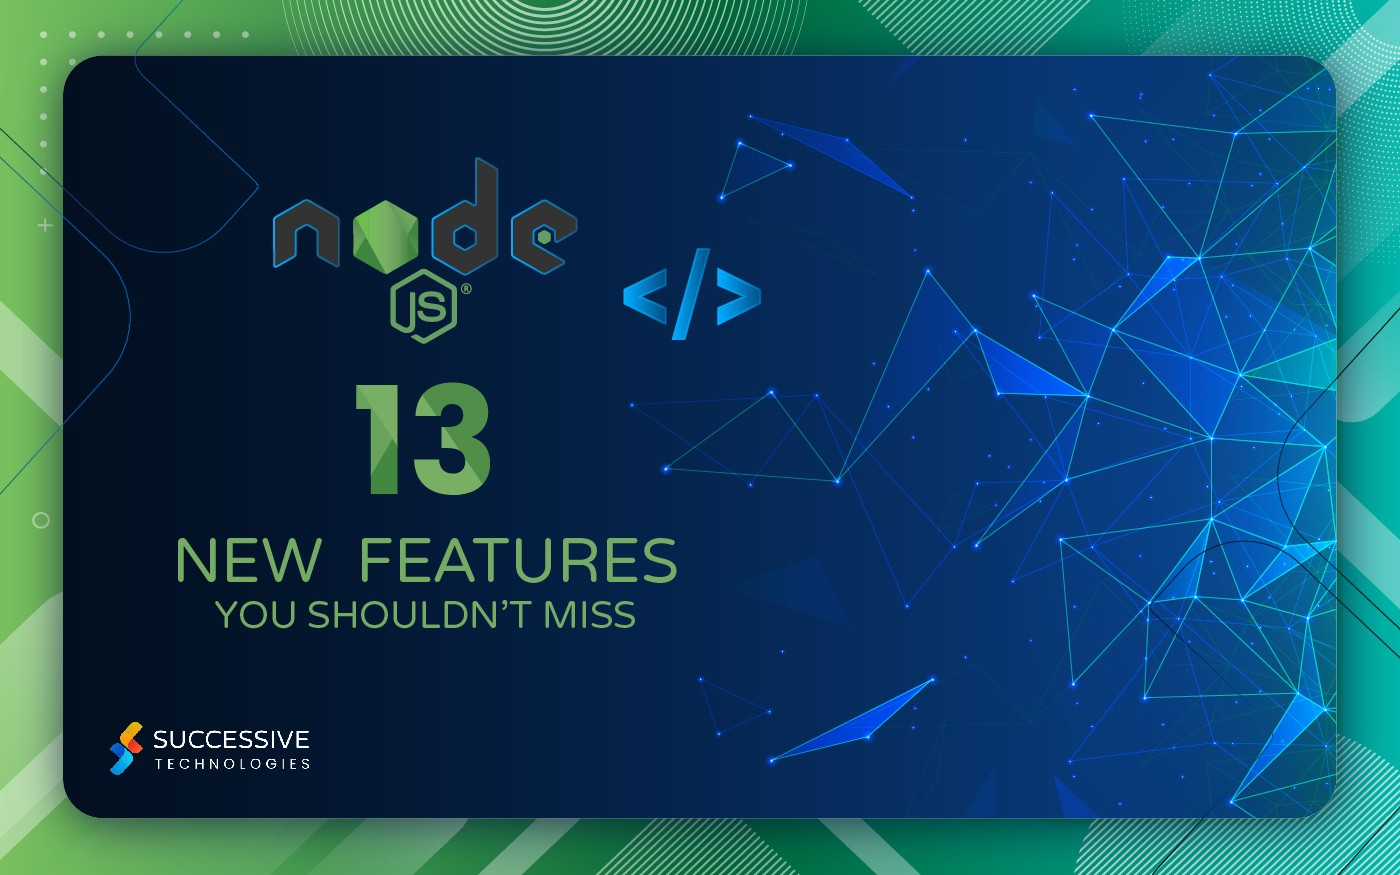 Node.js 13 Brings Enhanced Programming Features and Worker Threads